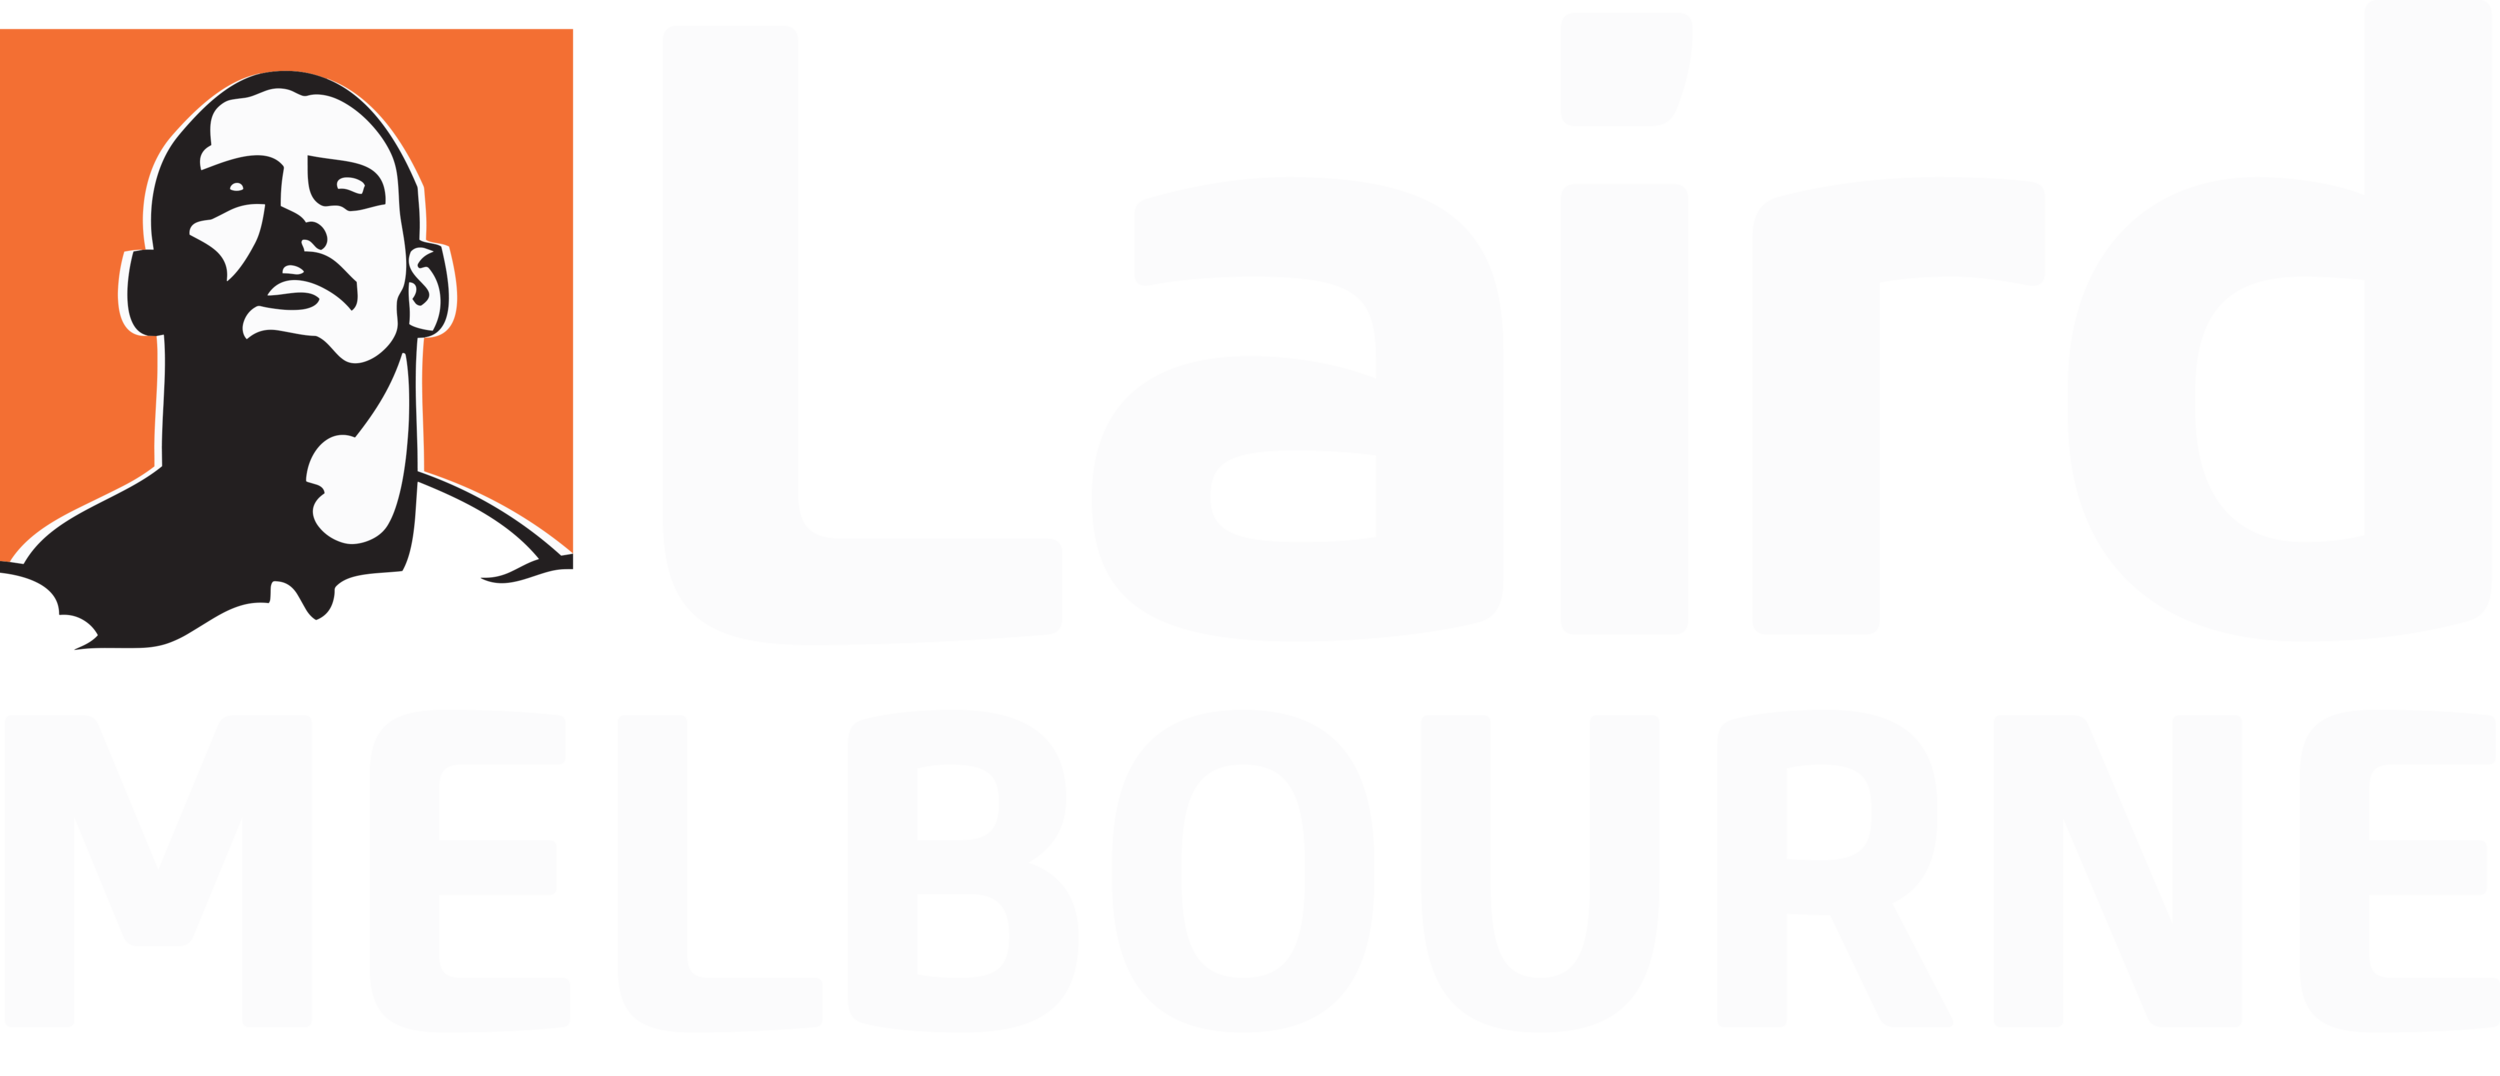 Laird-Melb-2018-white.png